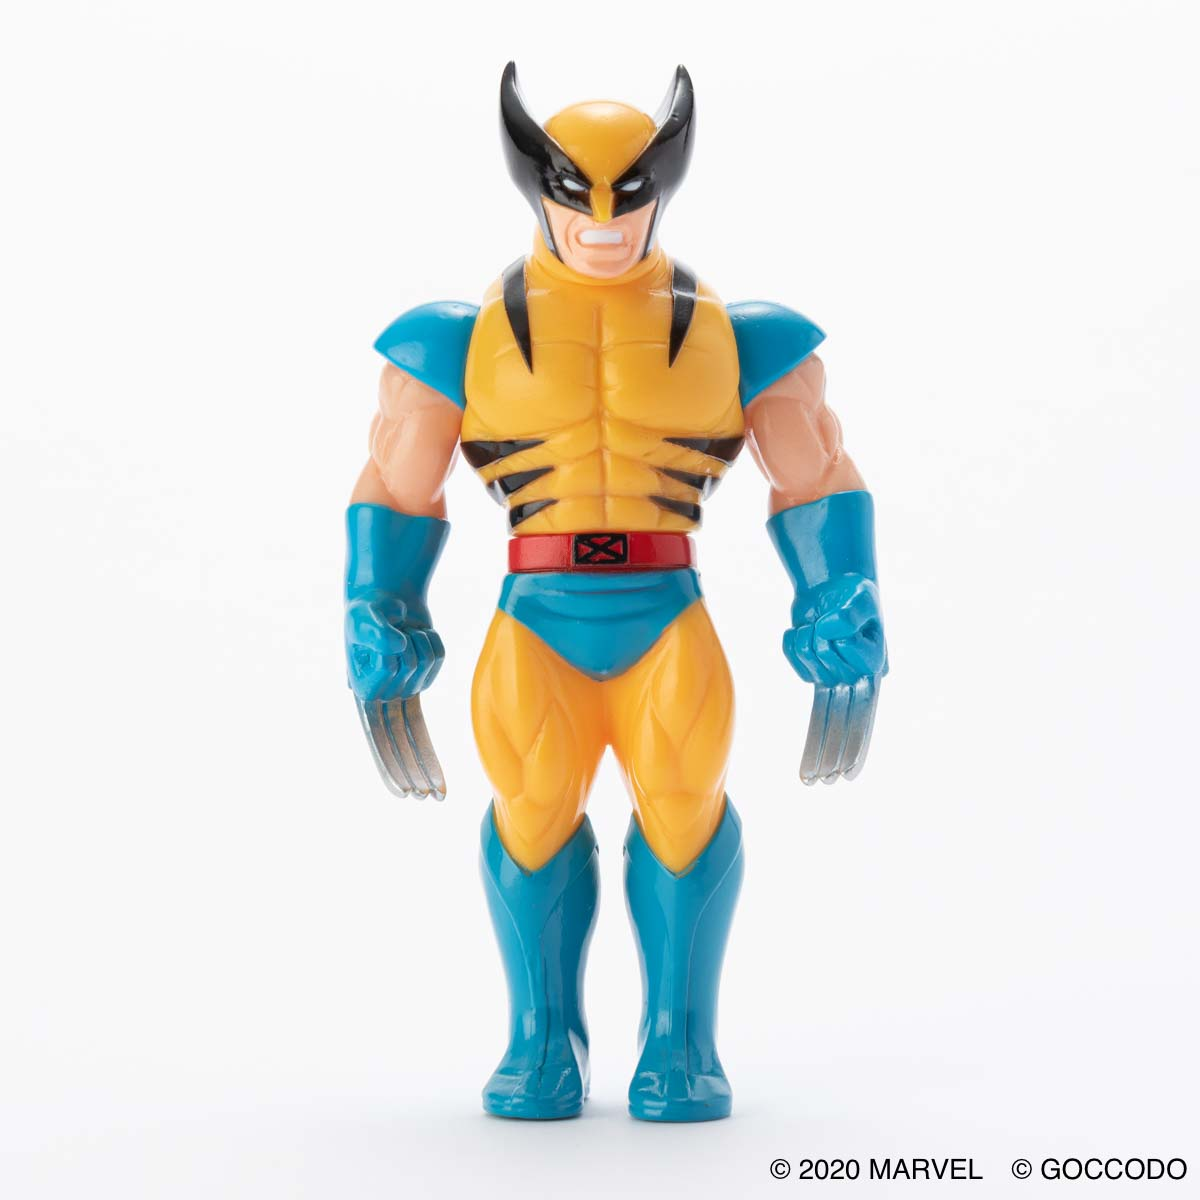 HKDSTOY × GOCCODO -MARVEL [WOLVERINE] YELLOW/BLUE